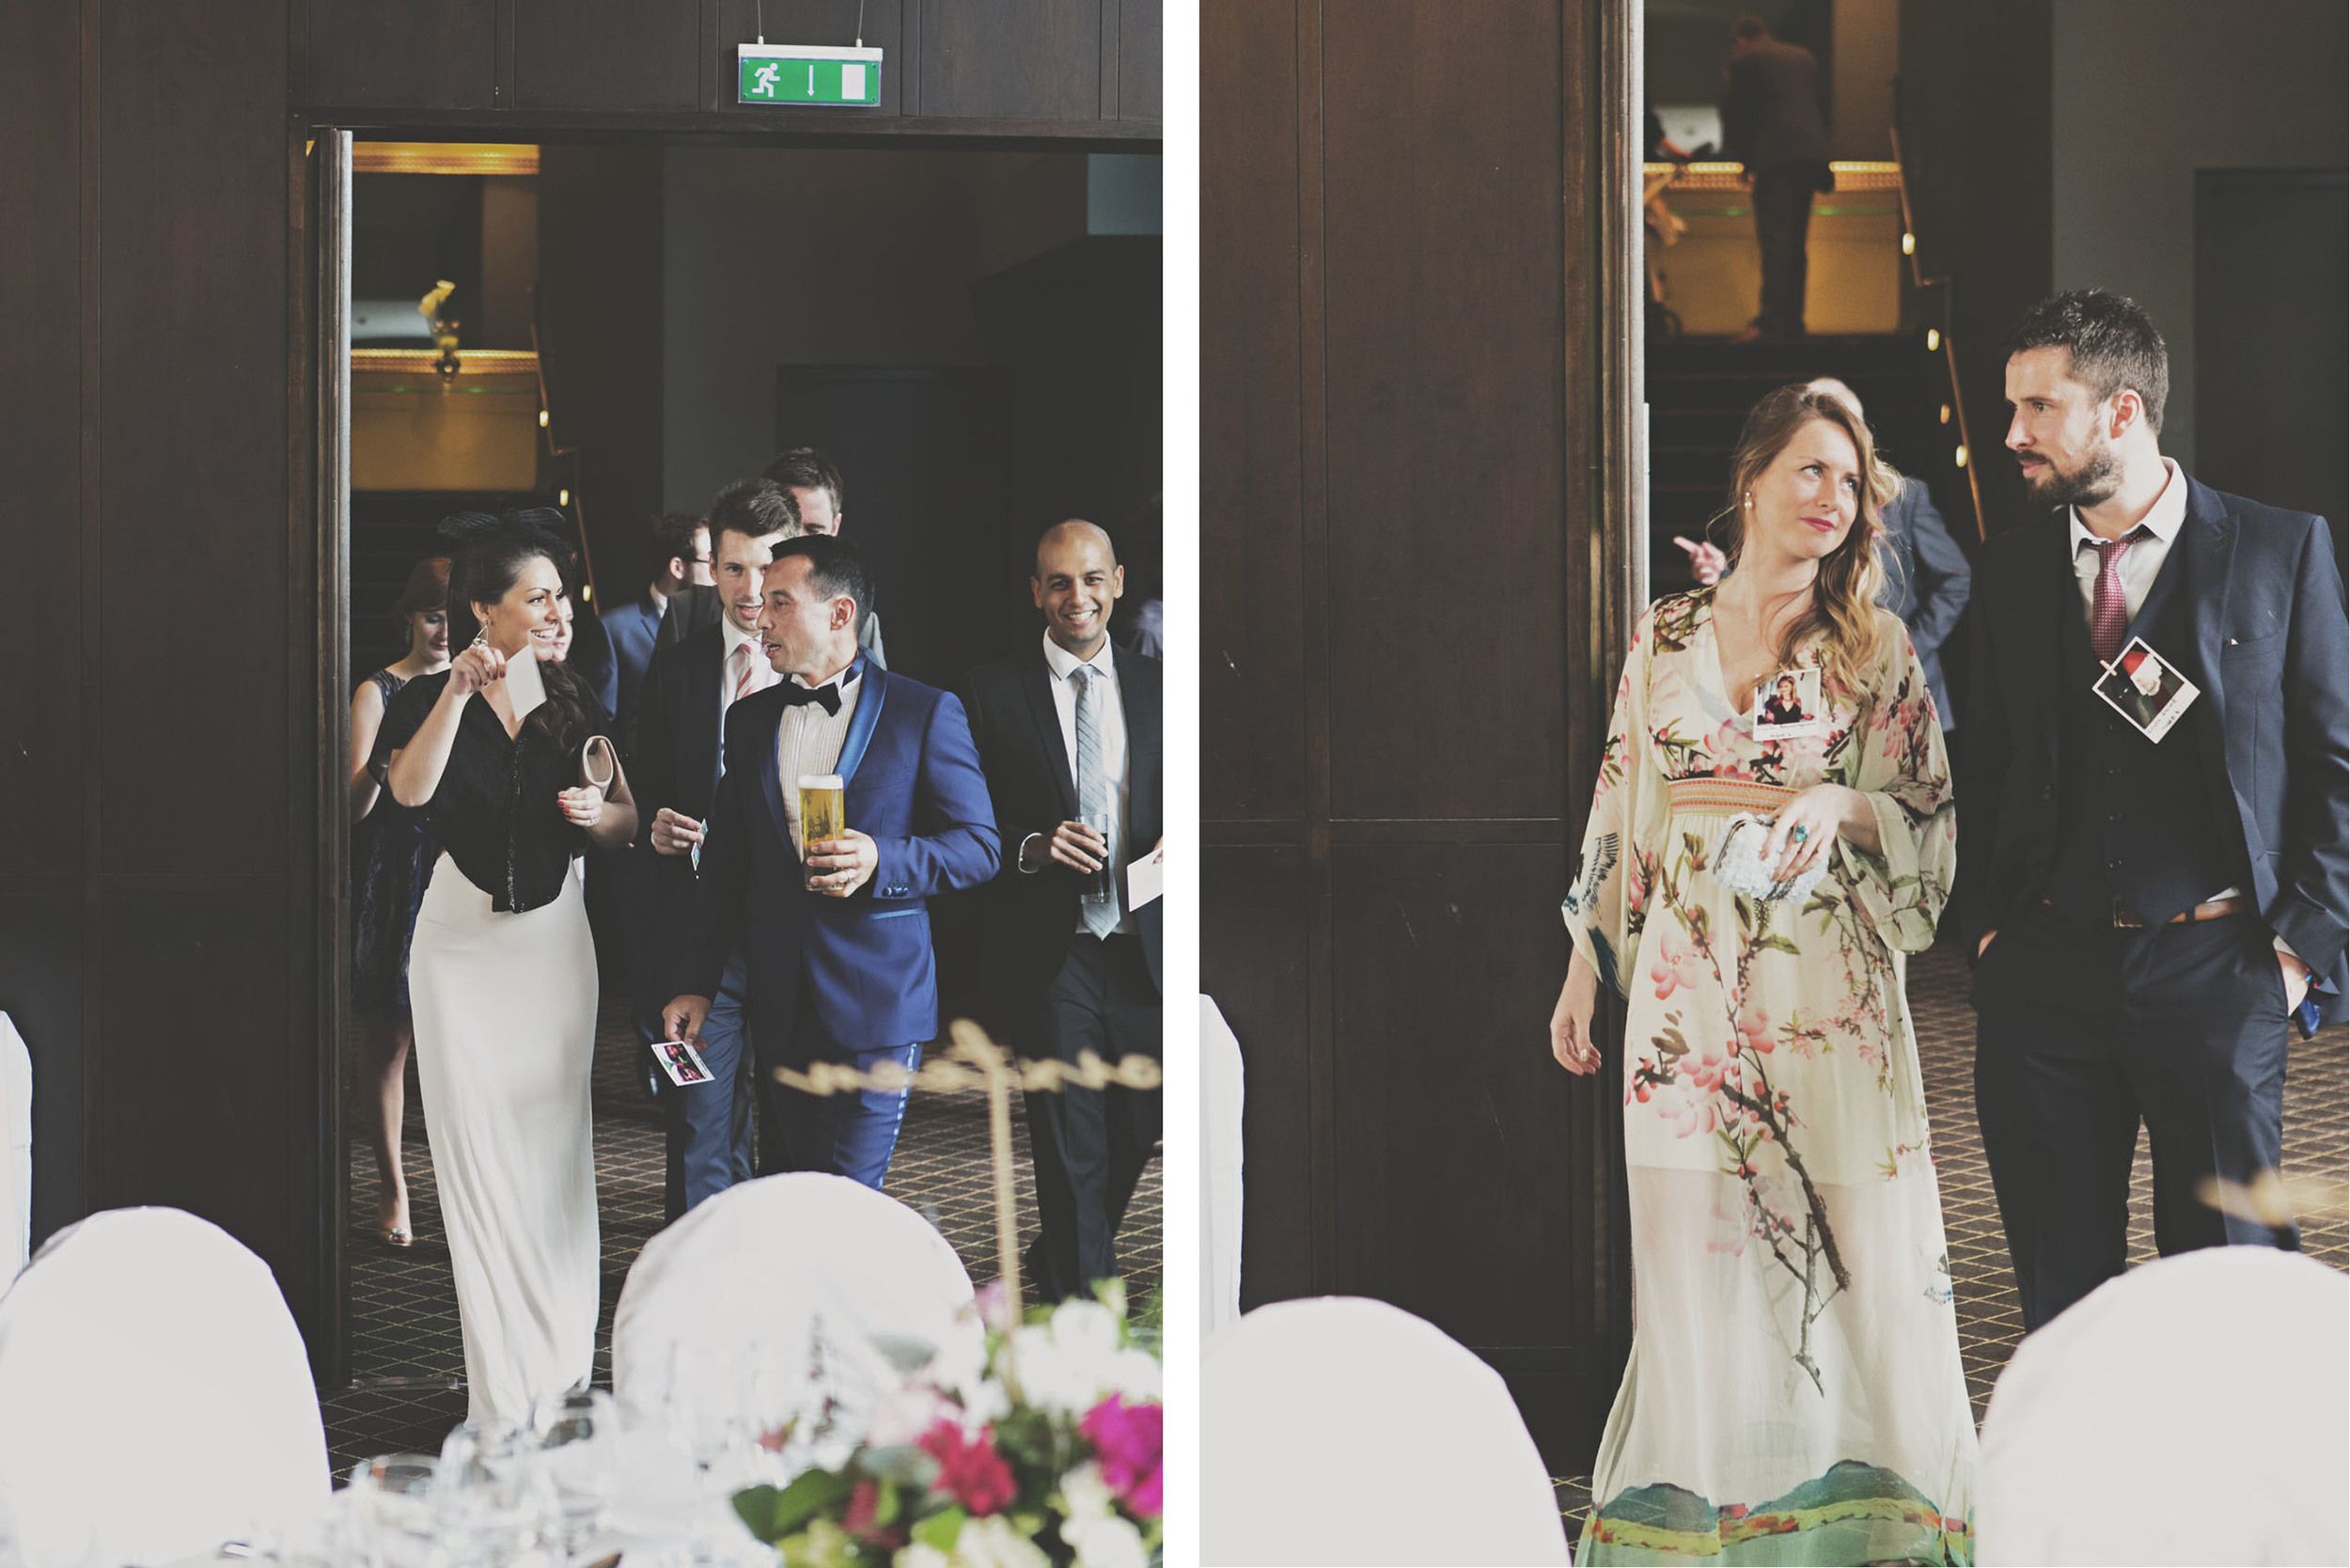 Julie & Matt's Seafield Wedding by Studio33weddings 106.jpg